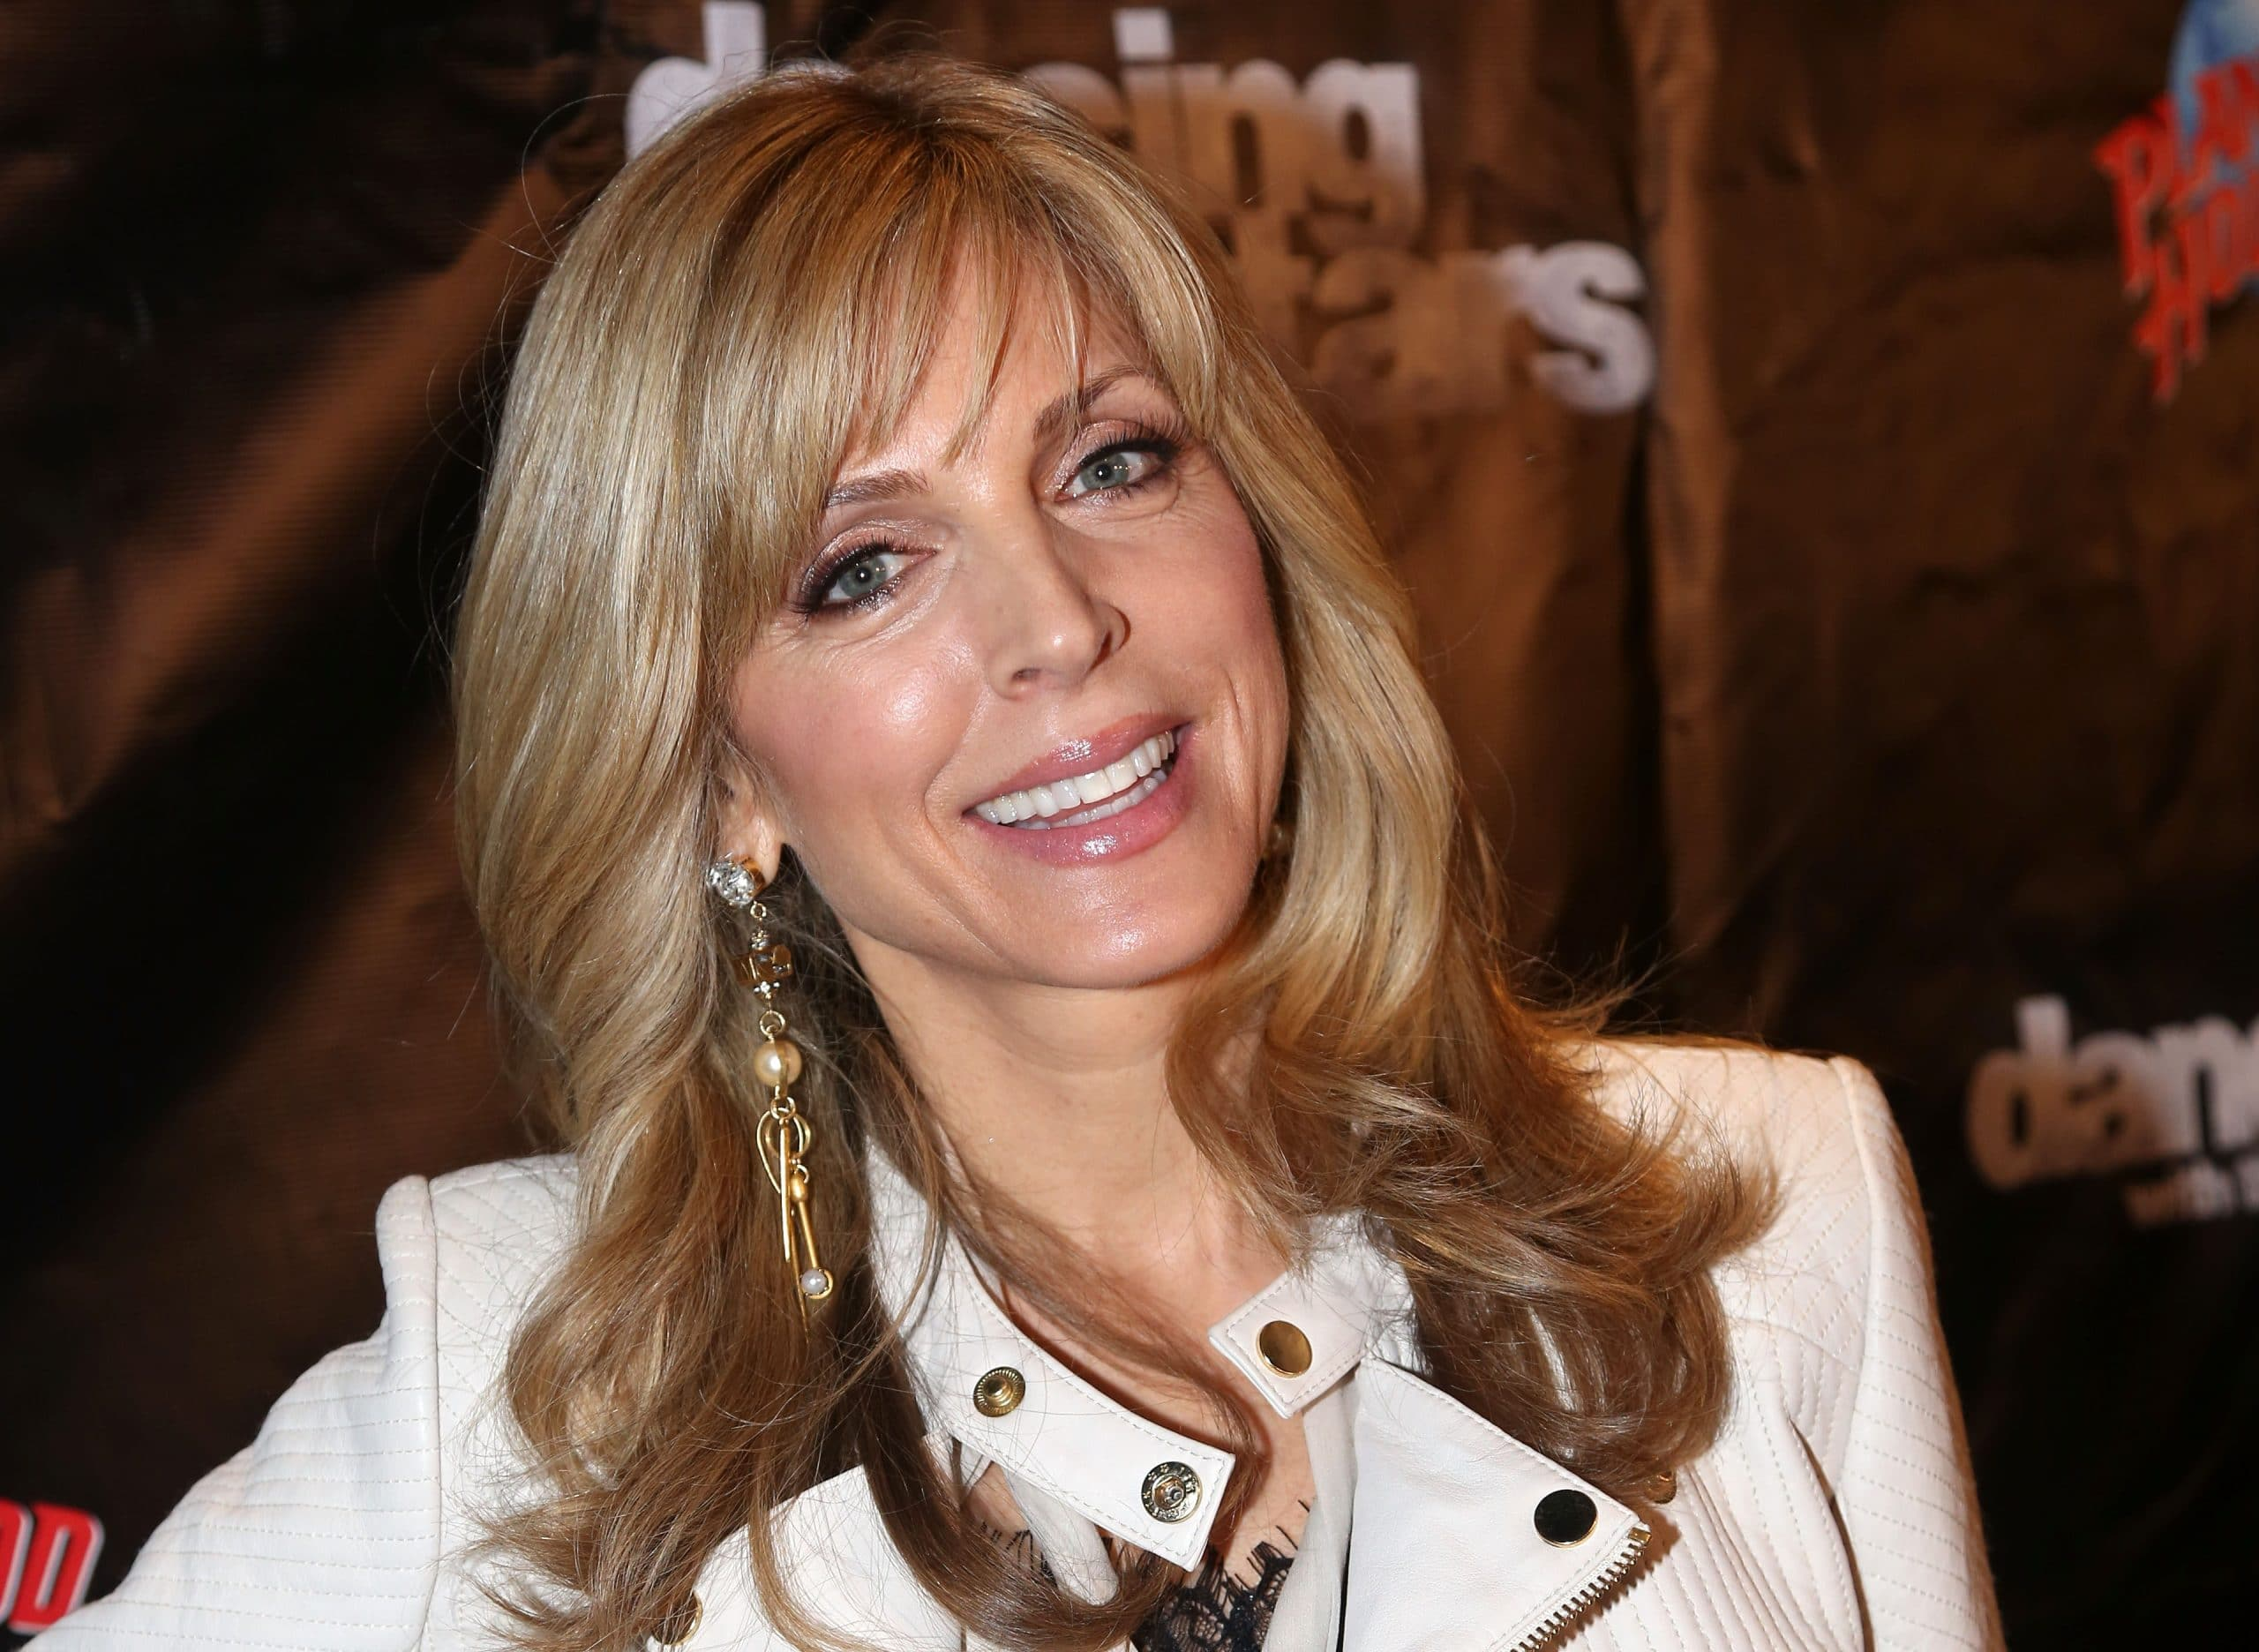 Marla Maples name